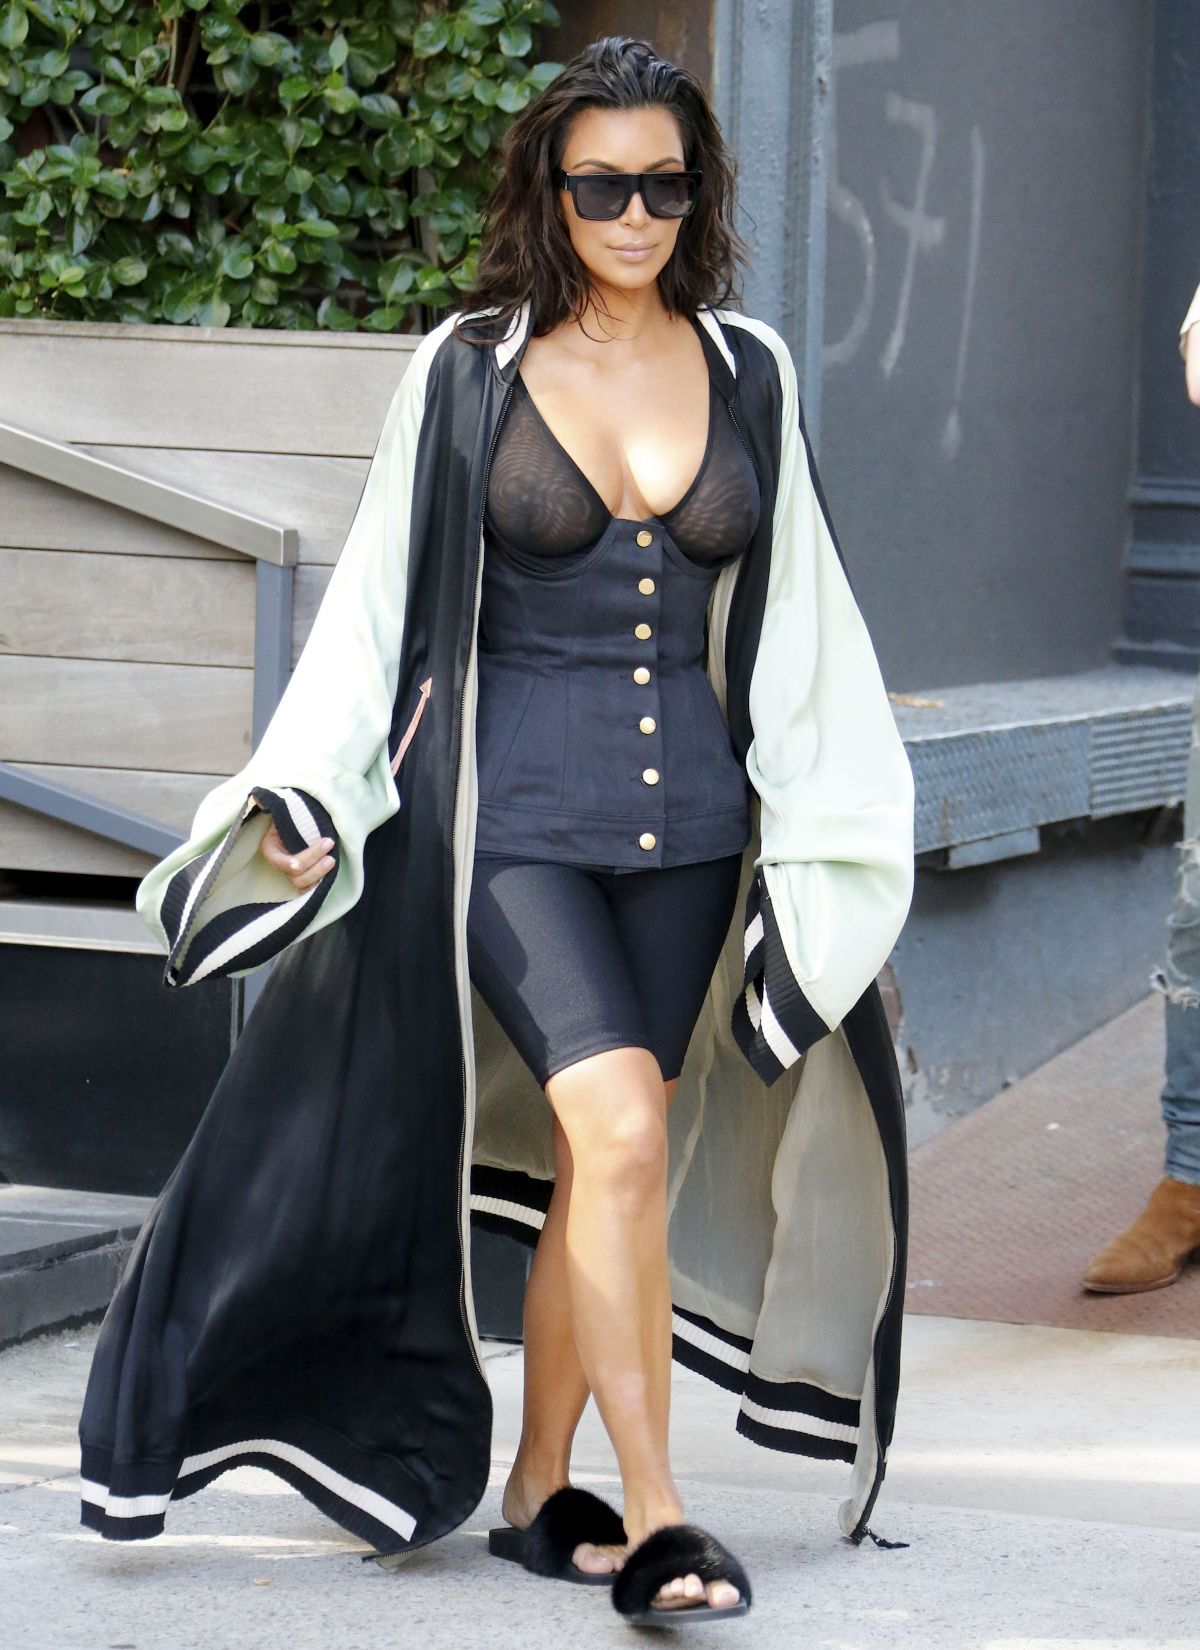 kim kardashian - photo #1